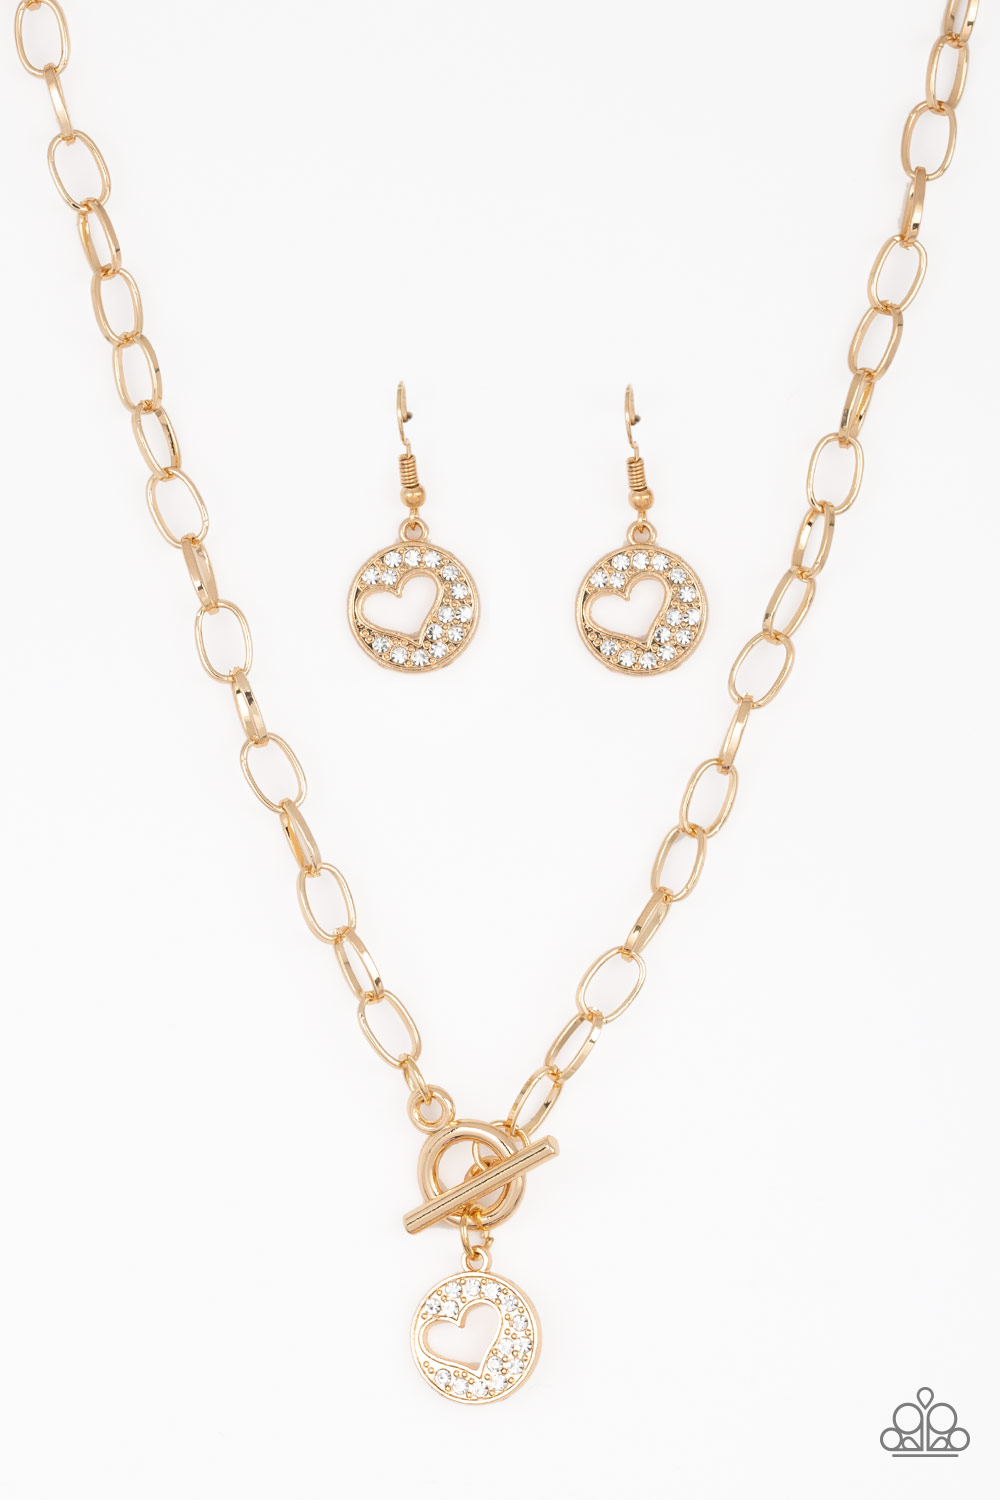 Heartbeat Retreat Gold Paparazzi Accessories Diamonds Gems Boutique Online Store Powered By Storenvy